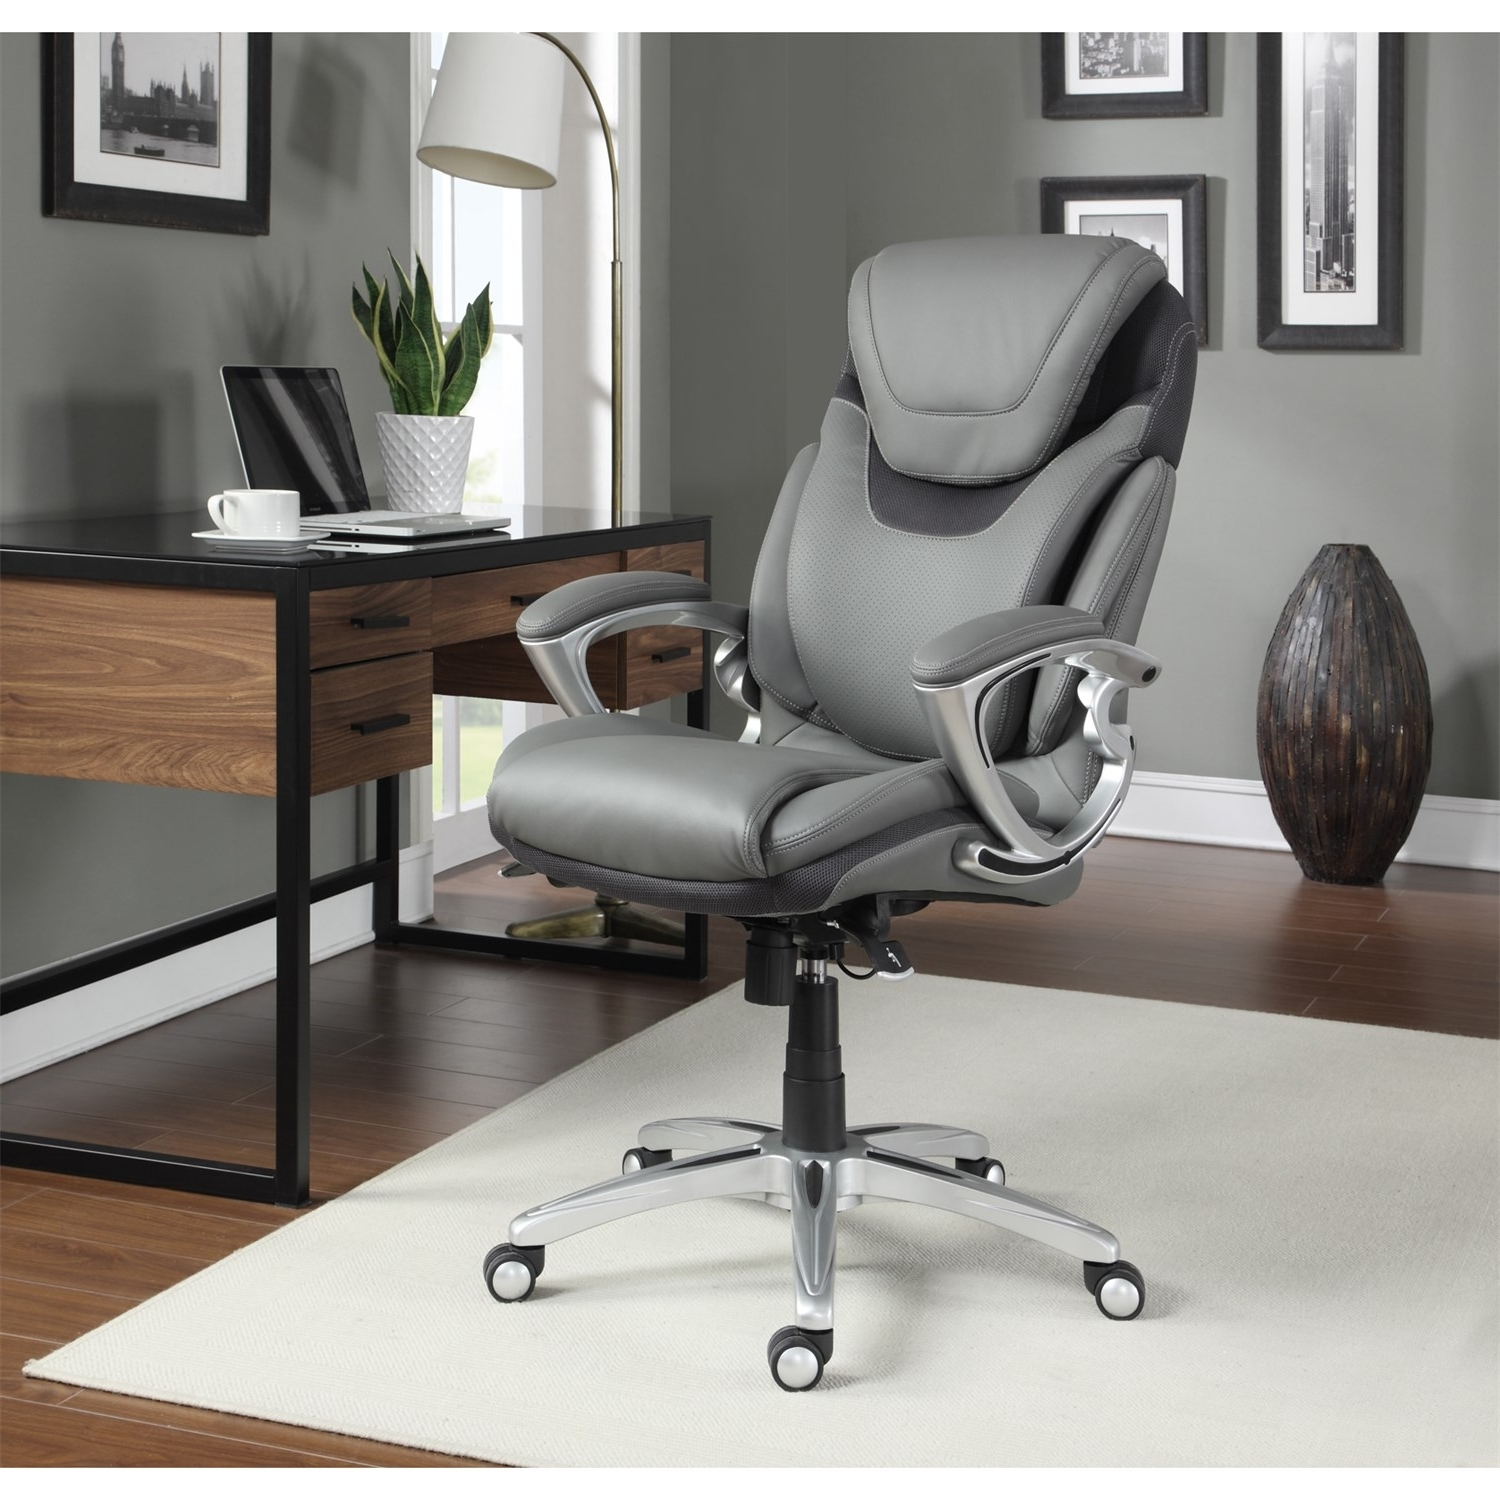 Serta At Home 43807 Air Health And Wellness Executive Office Chair For Famous Executive Office Chairs (View 15 of 20)